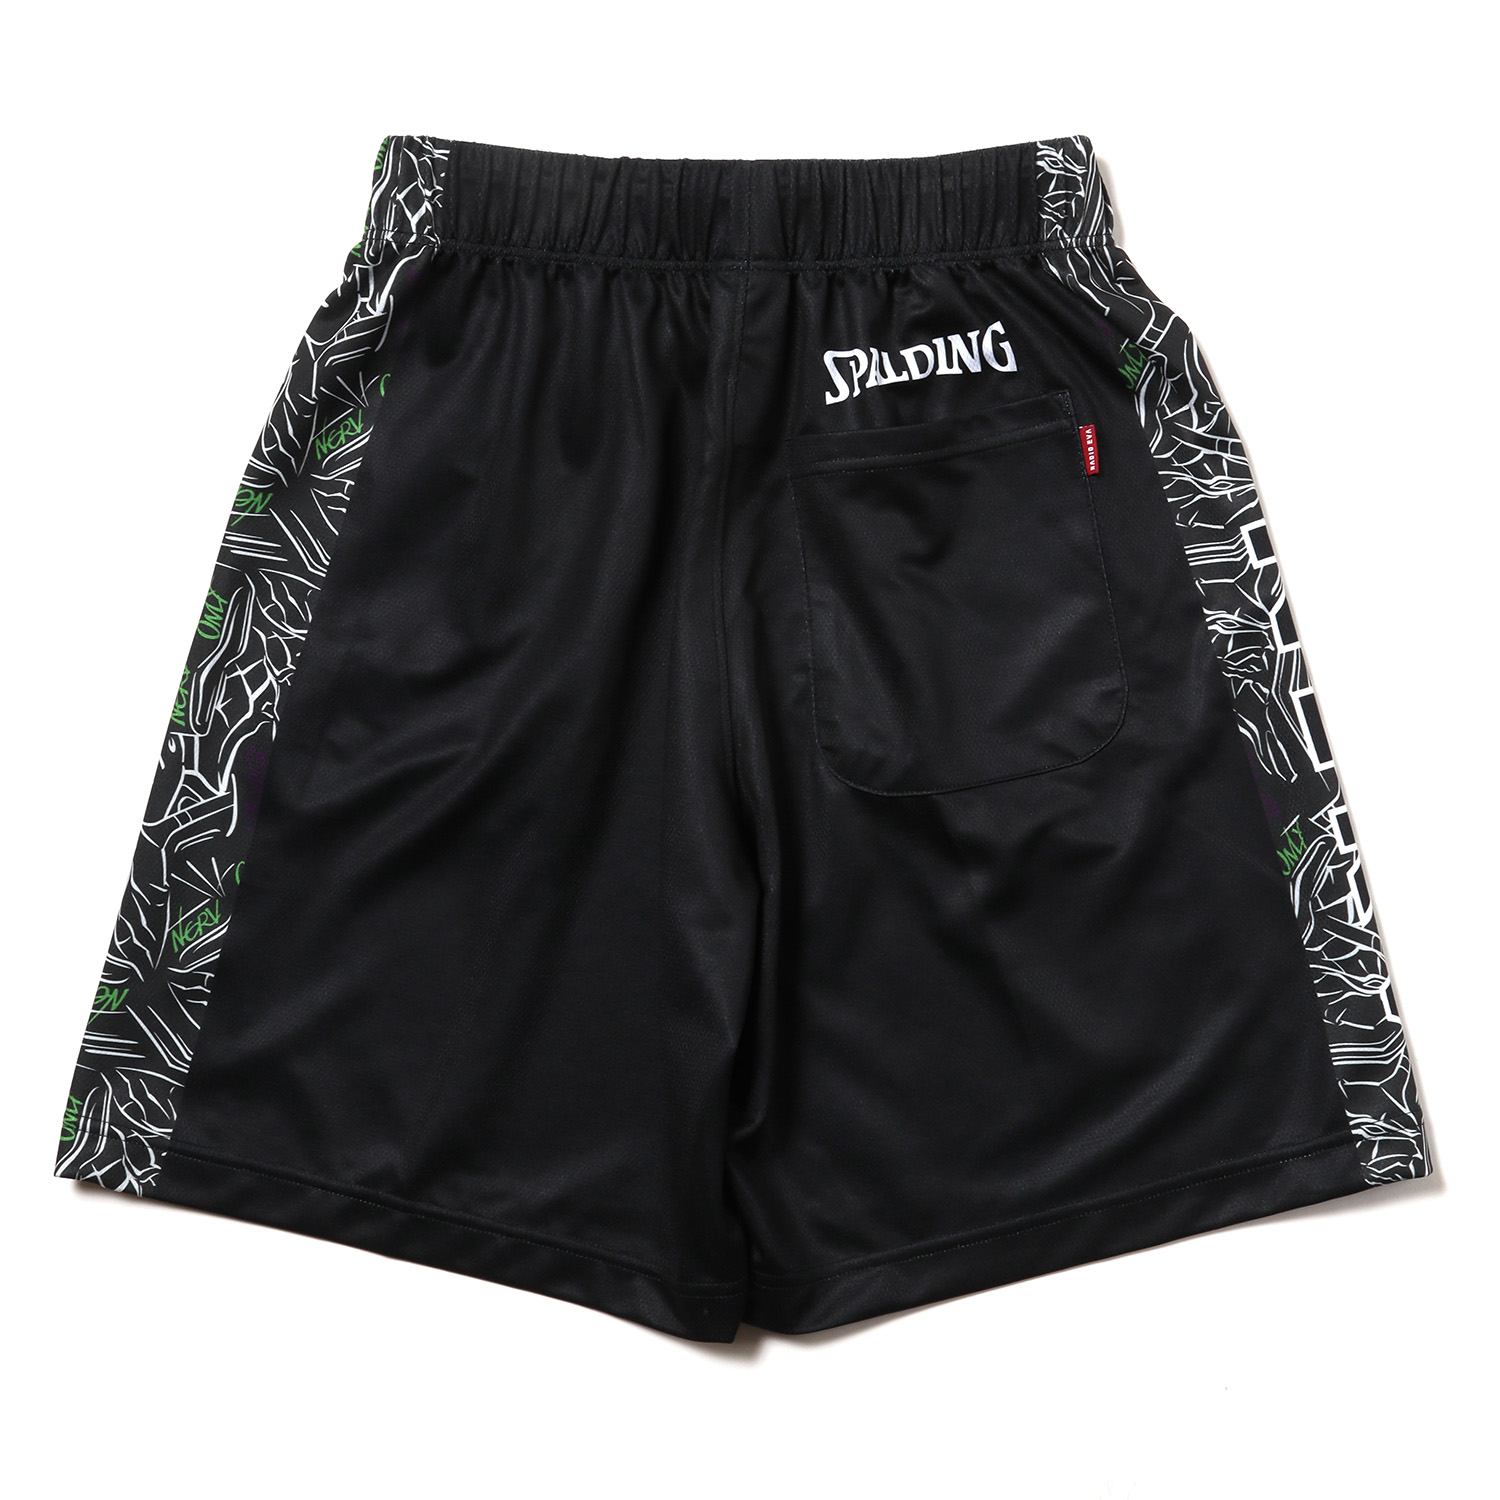 EVA-01 Practice Pants by SPALDING (Black x Multi)